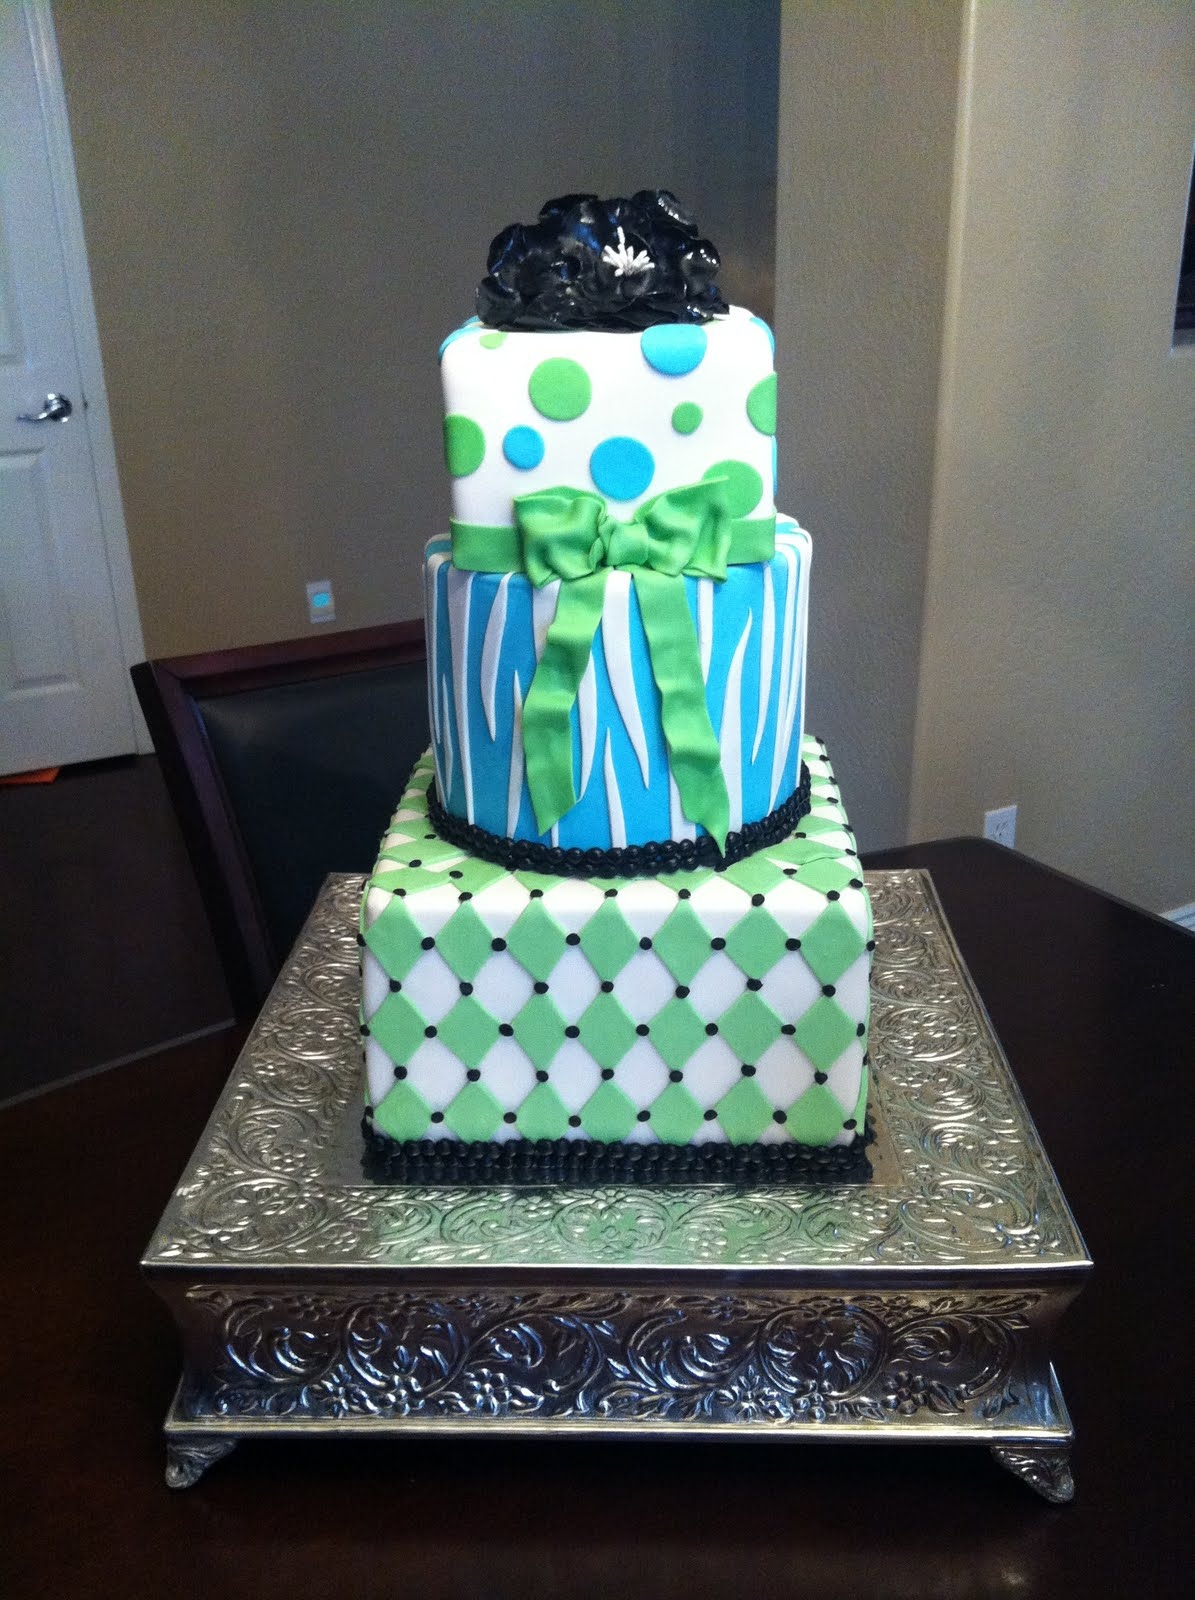 SASSY CAKES - Your Fondant Cake Design Destination: Blue & Green ...